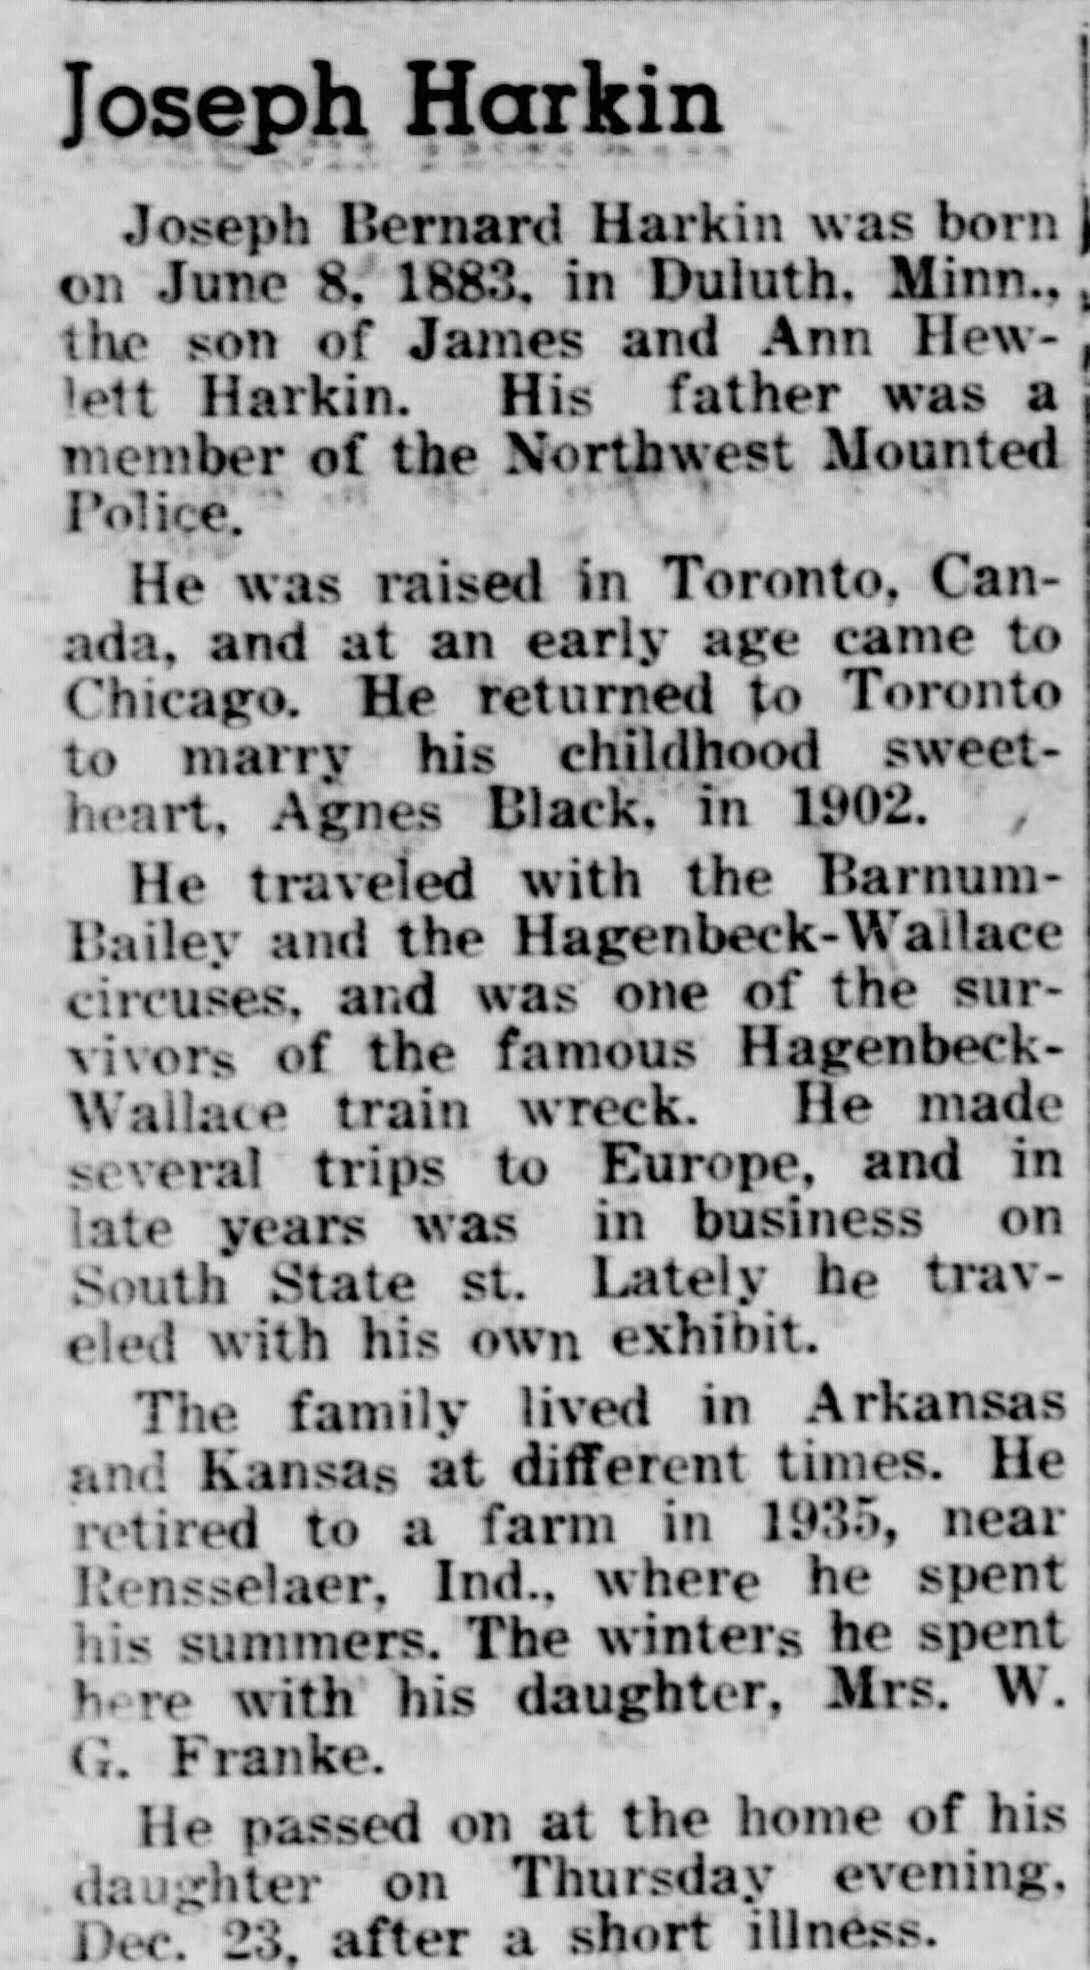 Obituary for Joseph Bernard Harkin,  Arlington Heights Herald , December 31, 1943.